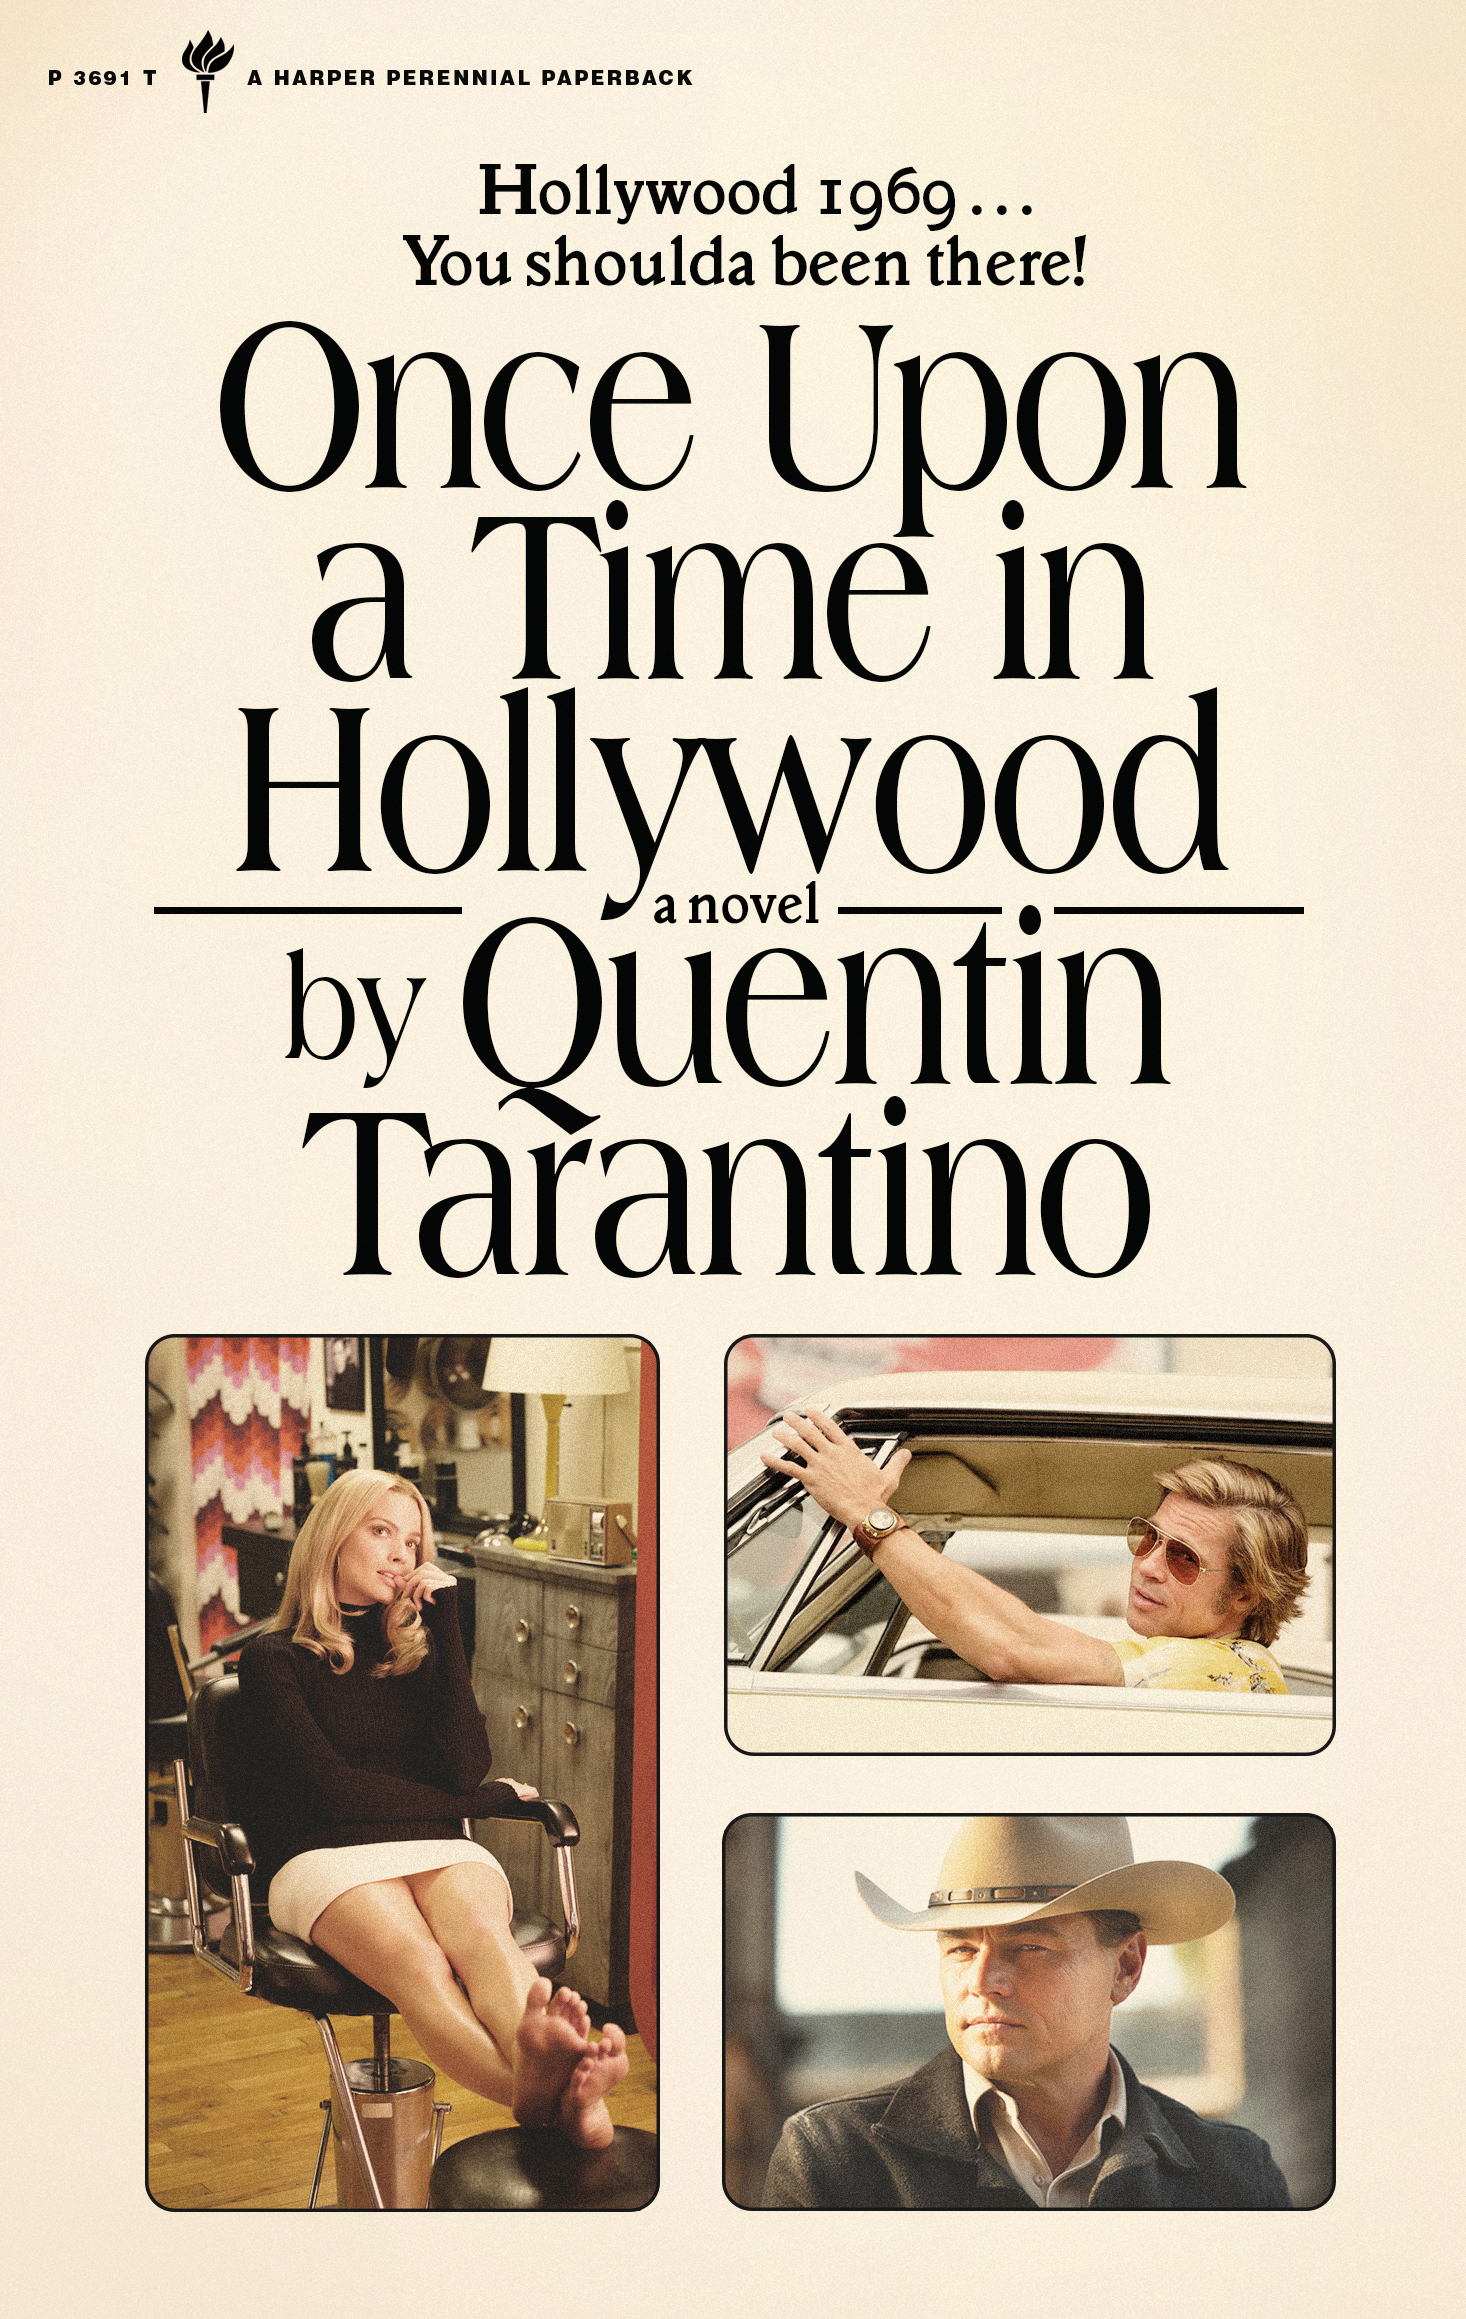 The cover of Quentin Tarantino's novelization of his 2019 movie Once Upon a Time in Hollywood